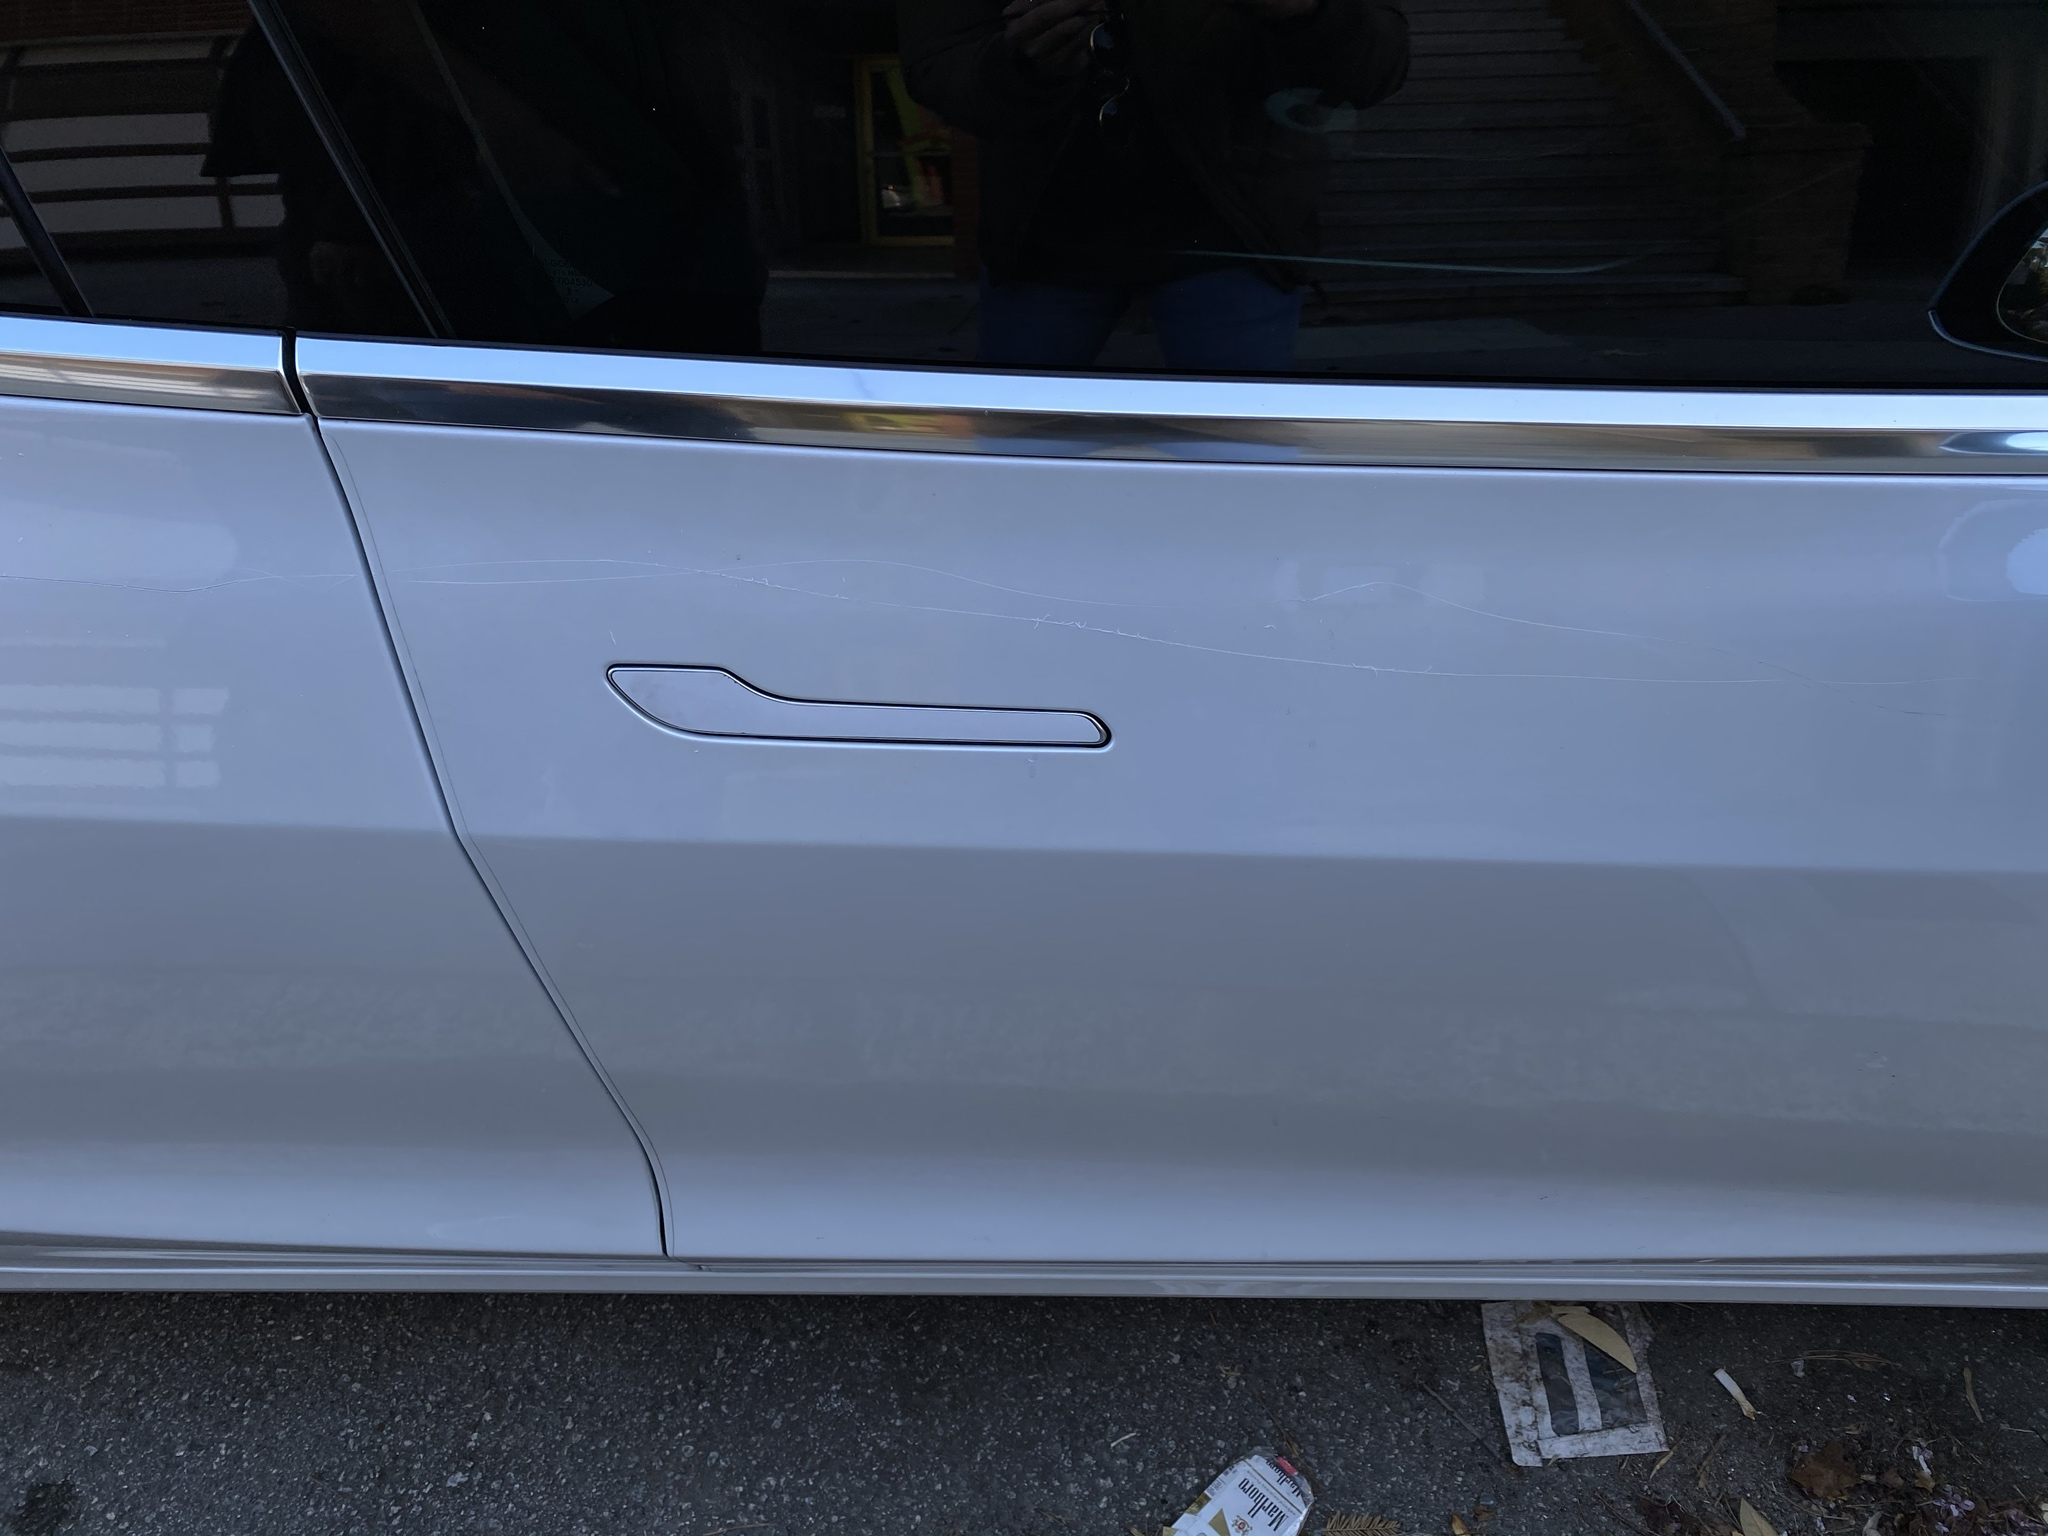 Keying damage Tesla Model 3